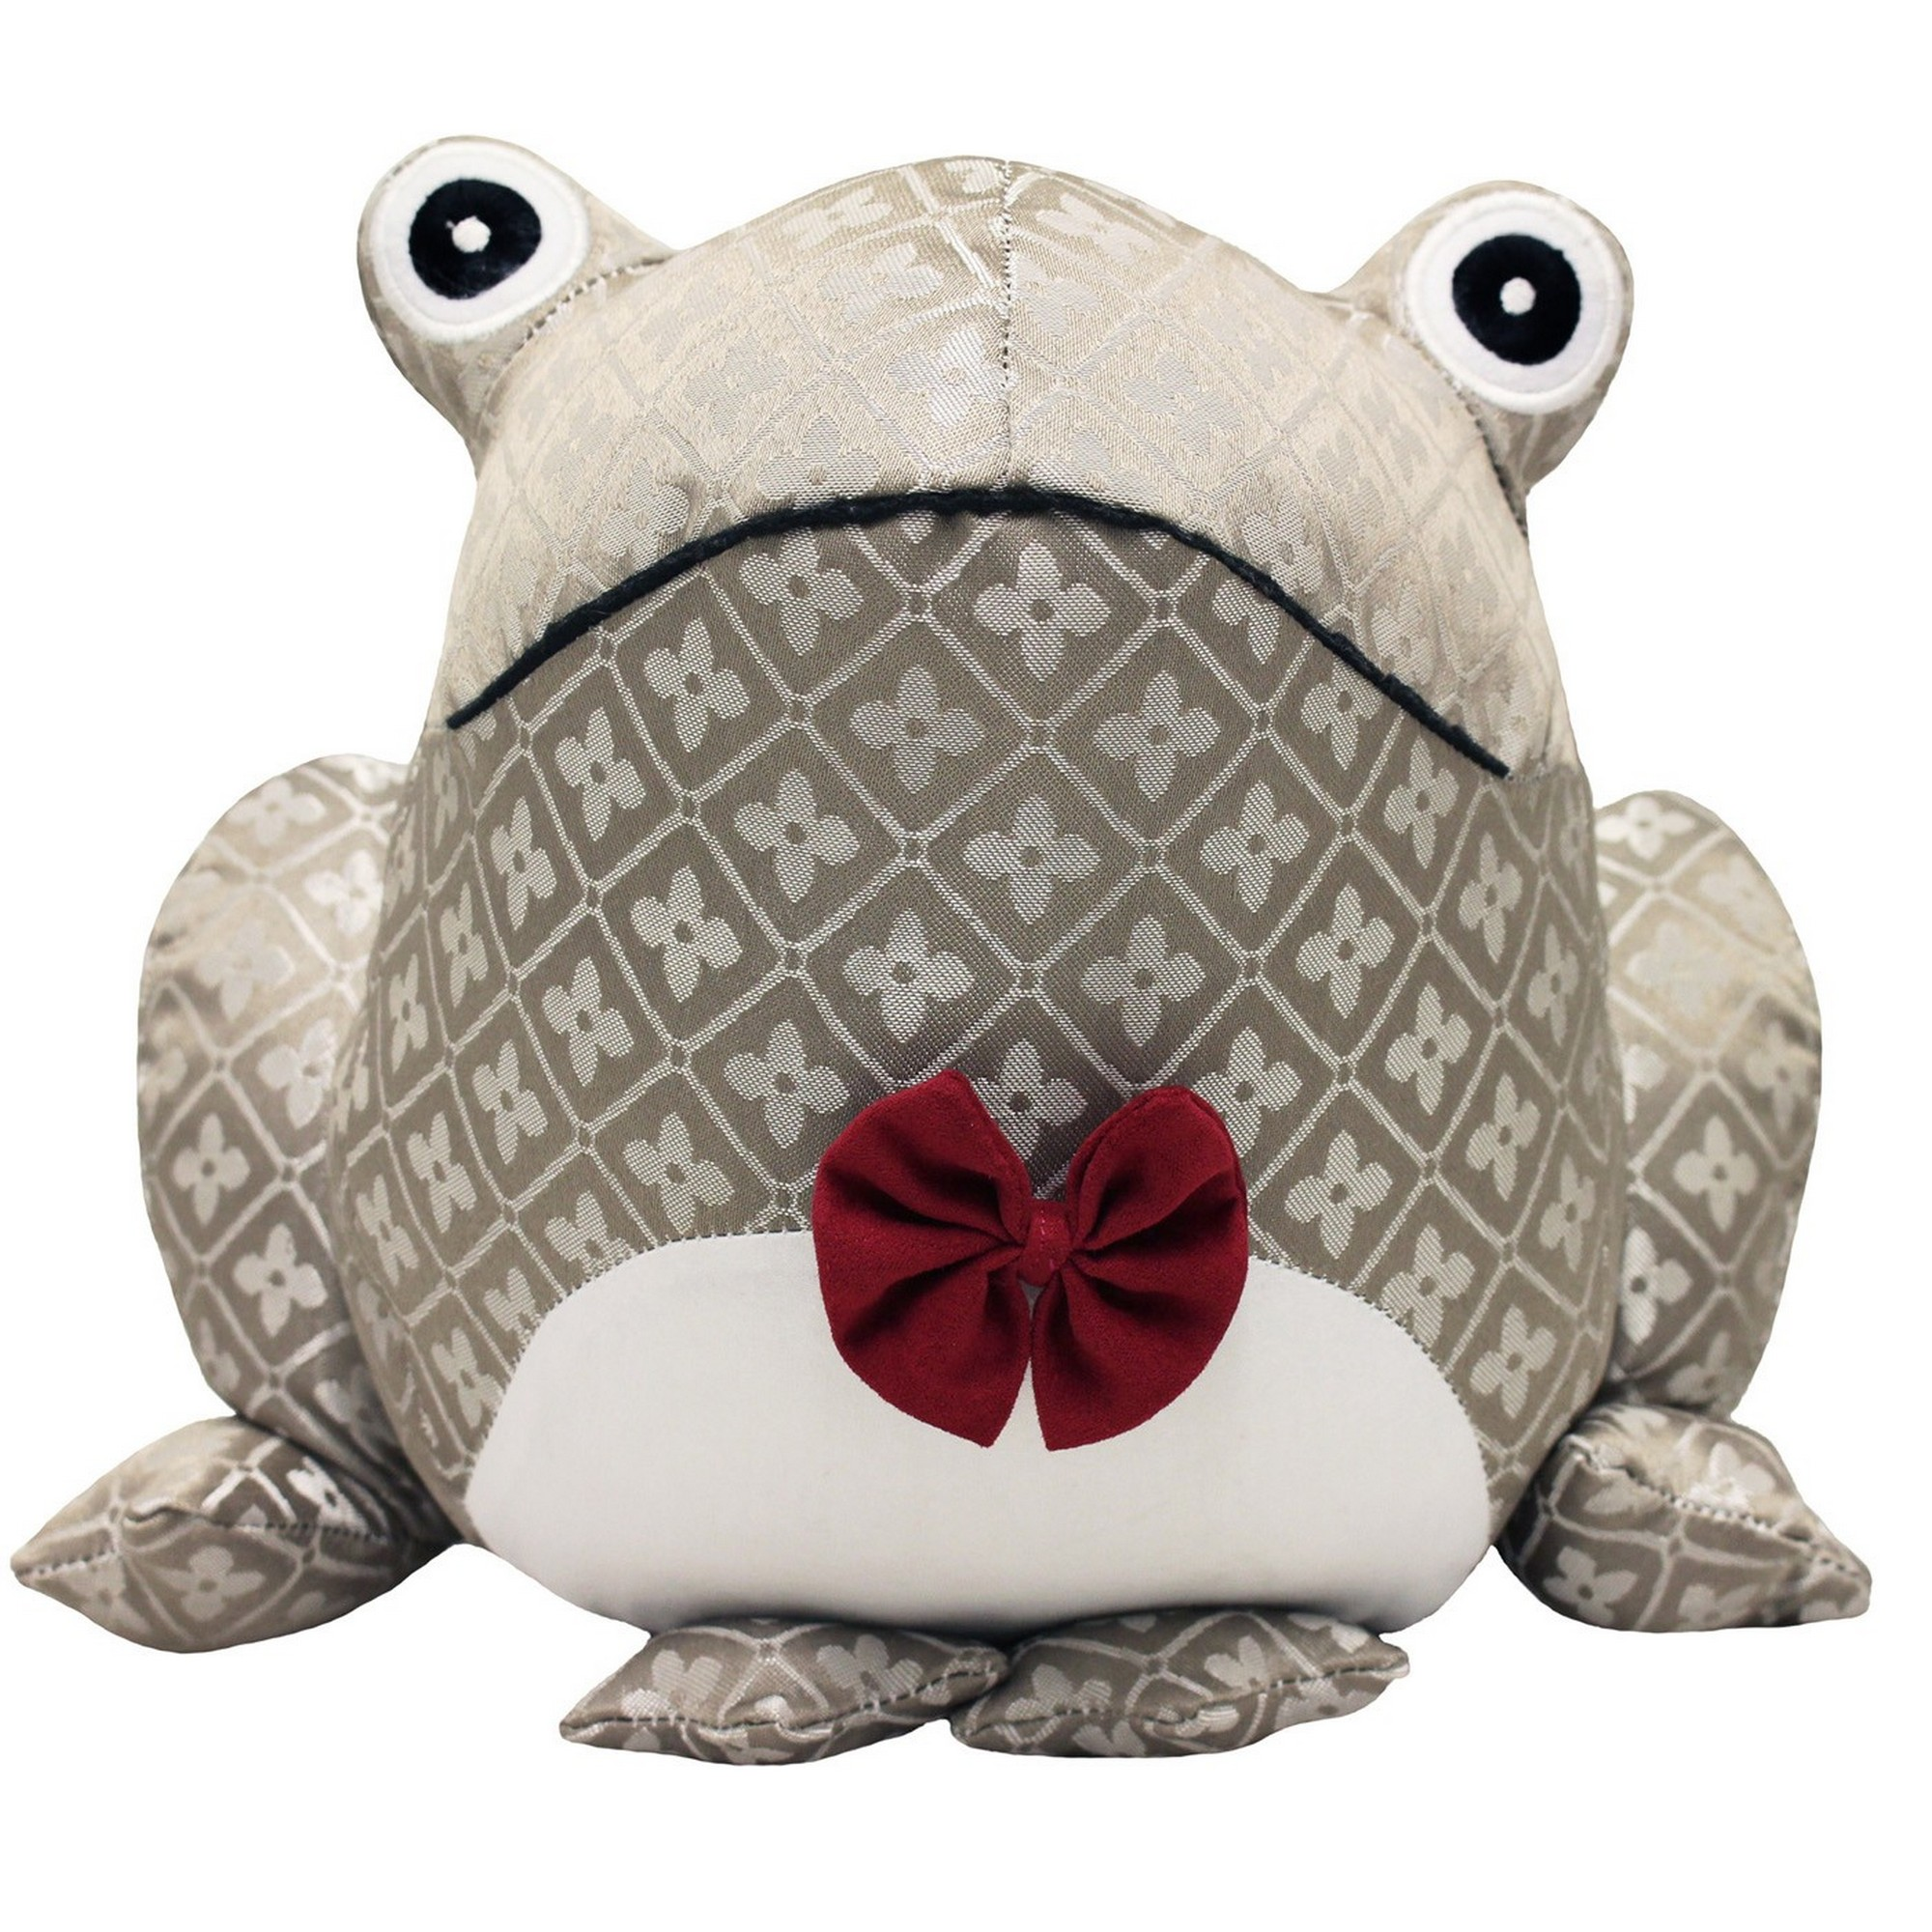 Riva Home Novelty Jaquard Frog Doorstop (One Size) (Multi)